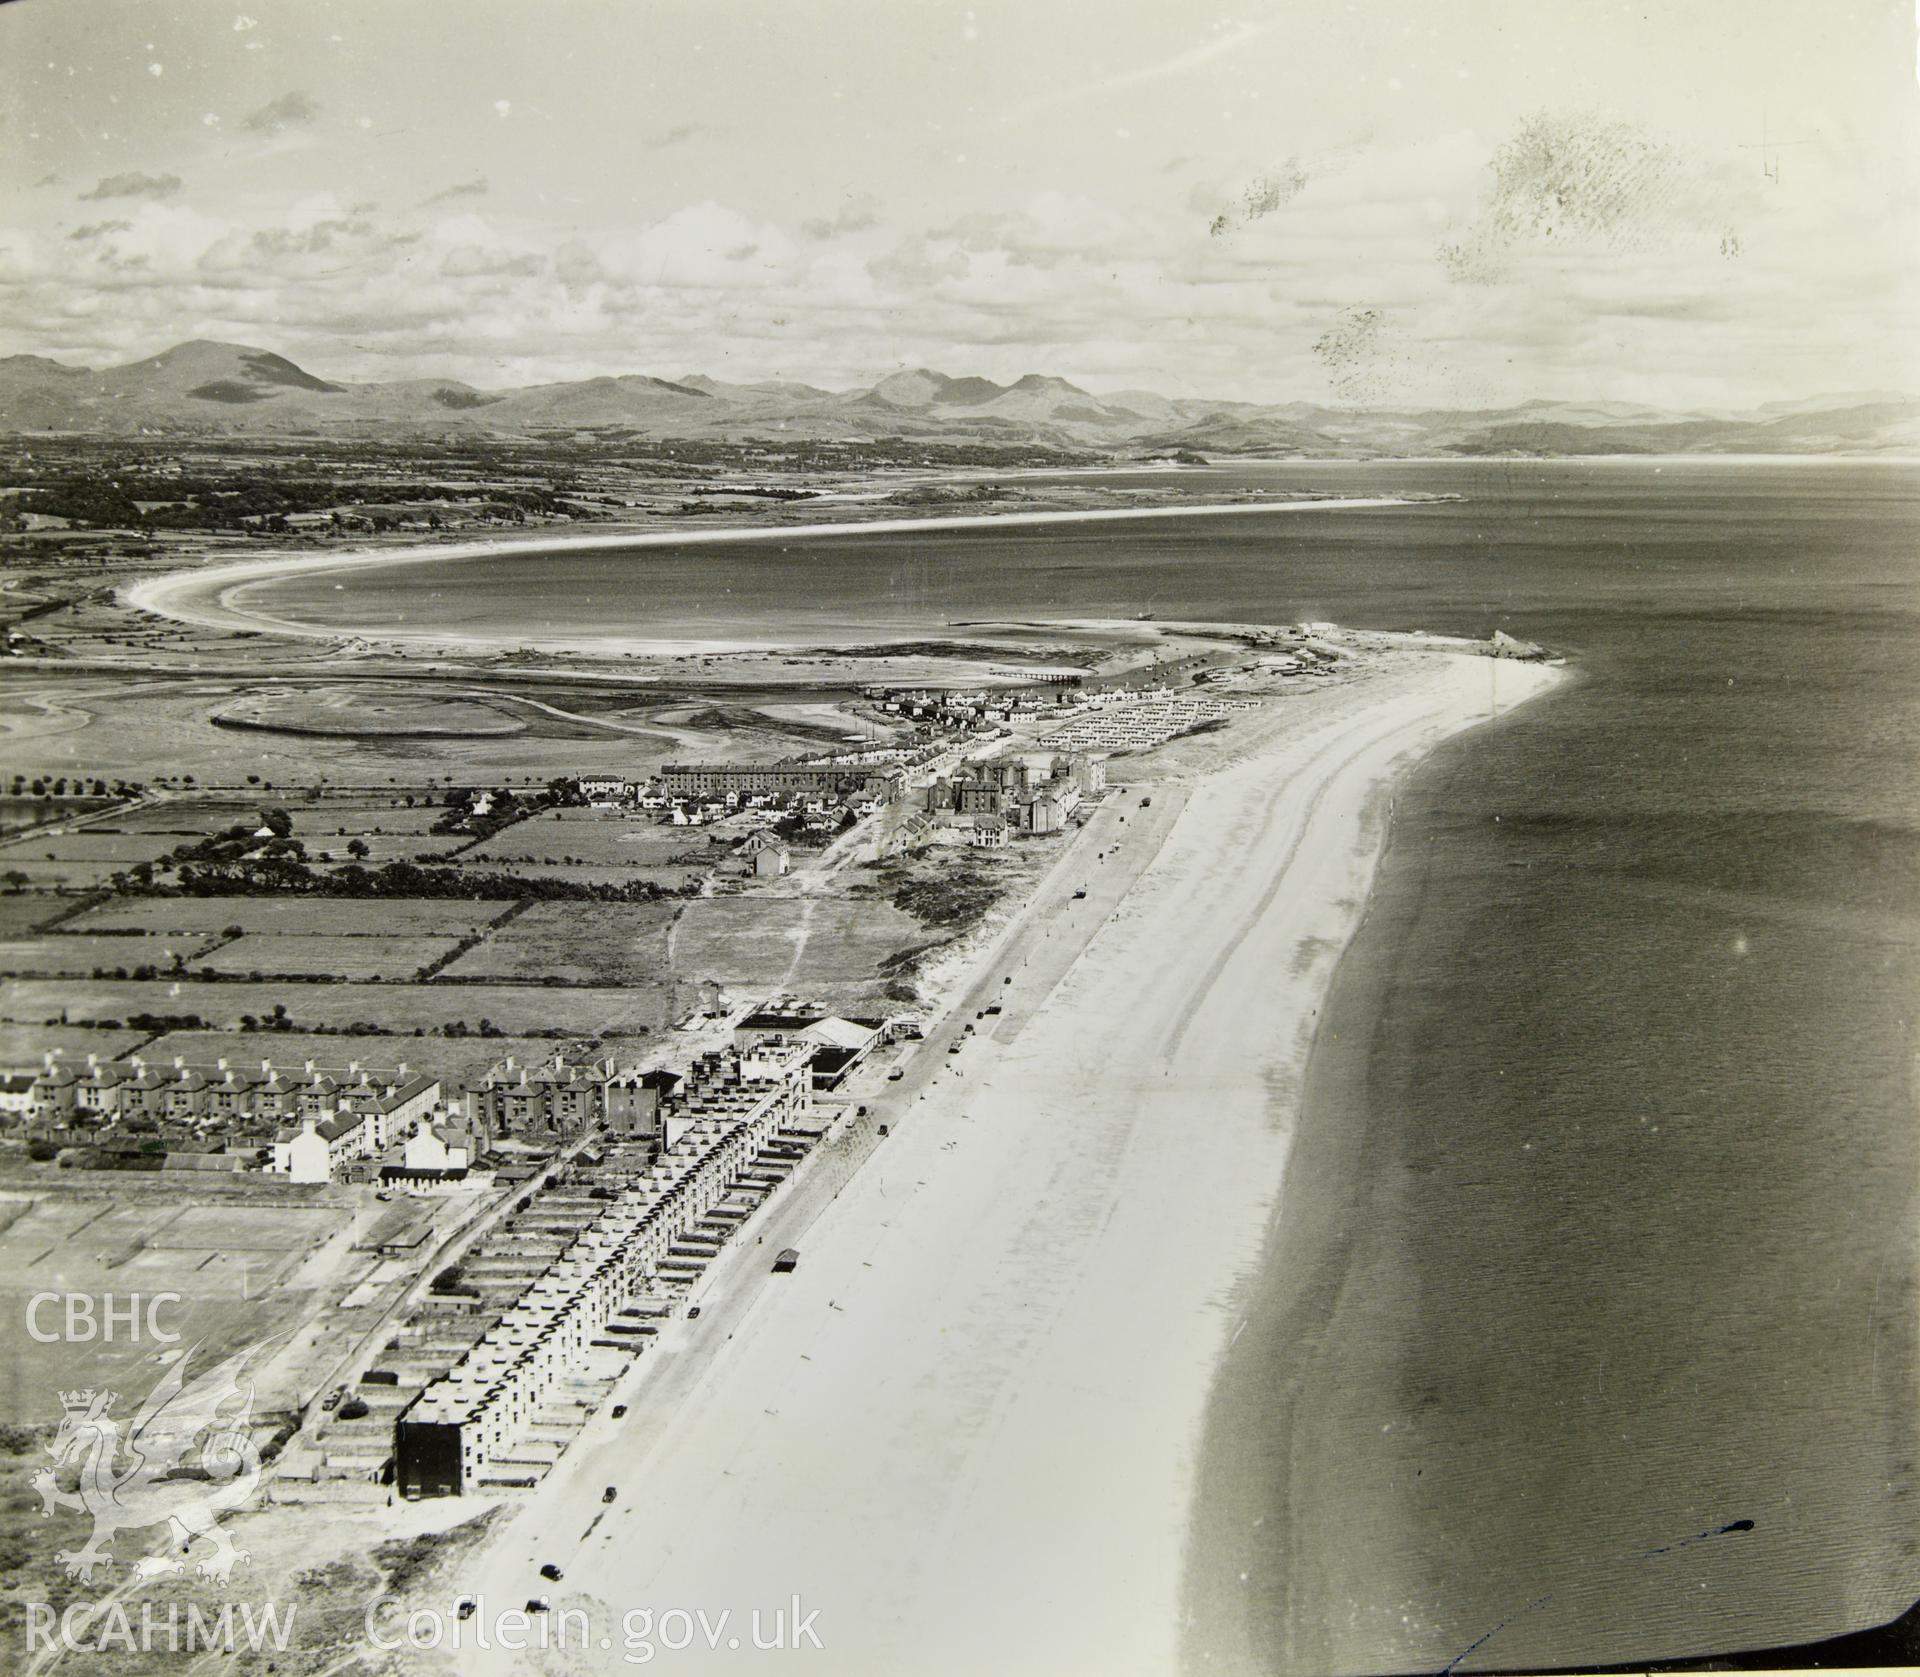 Digital copy of a black and white oblique aerial photograph showing Pwllheli, from Aerofilms album Caernarfonshire (Ll-Z), taken by Aerofilms Ltd and dated 13th June 1950.